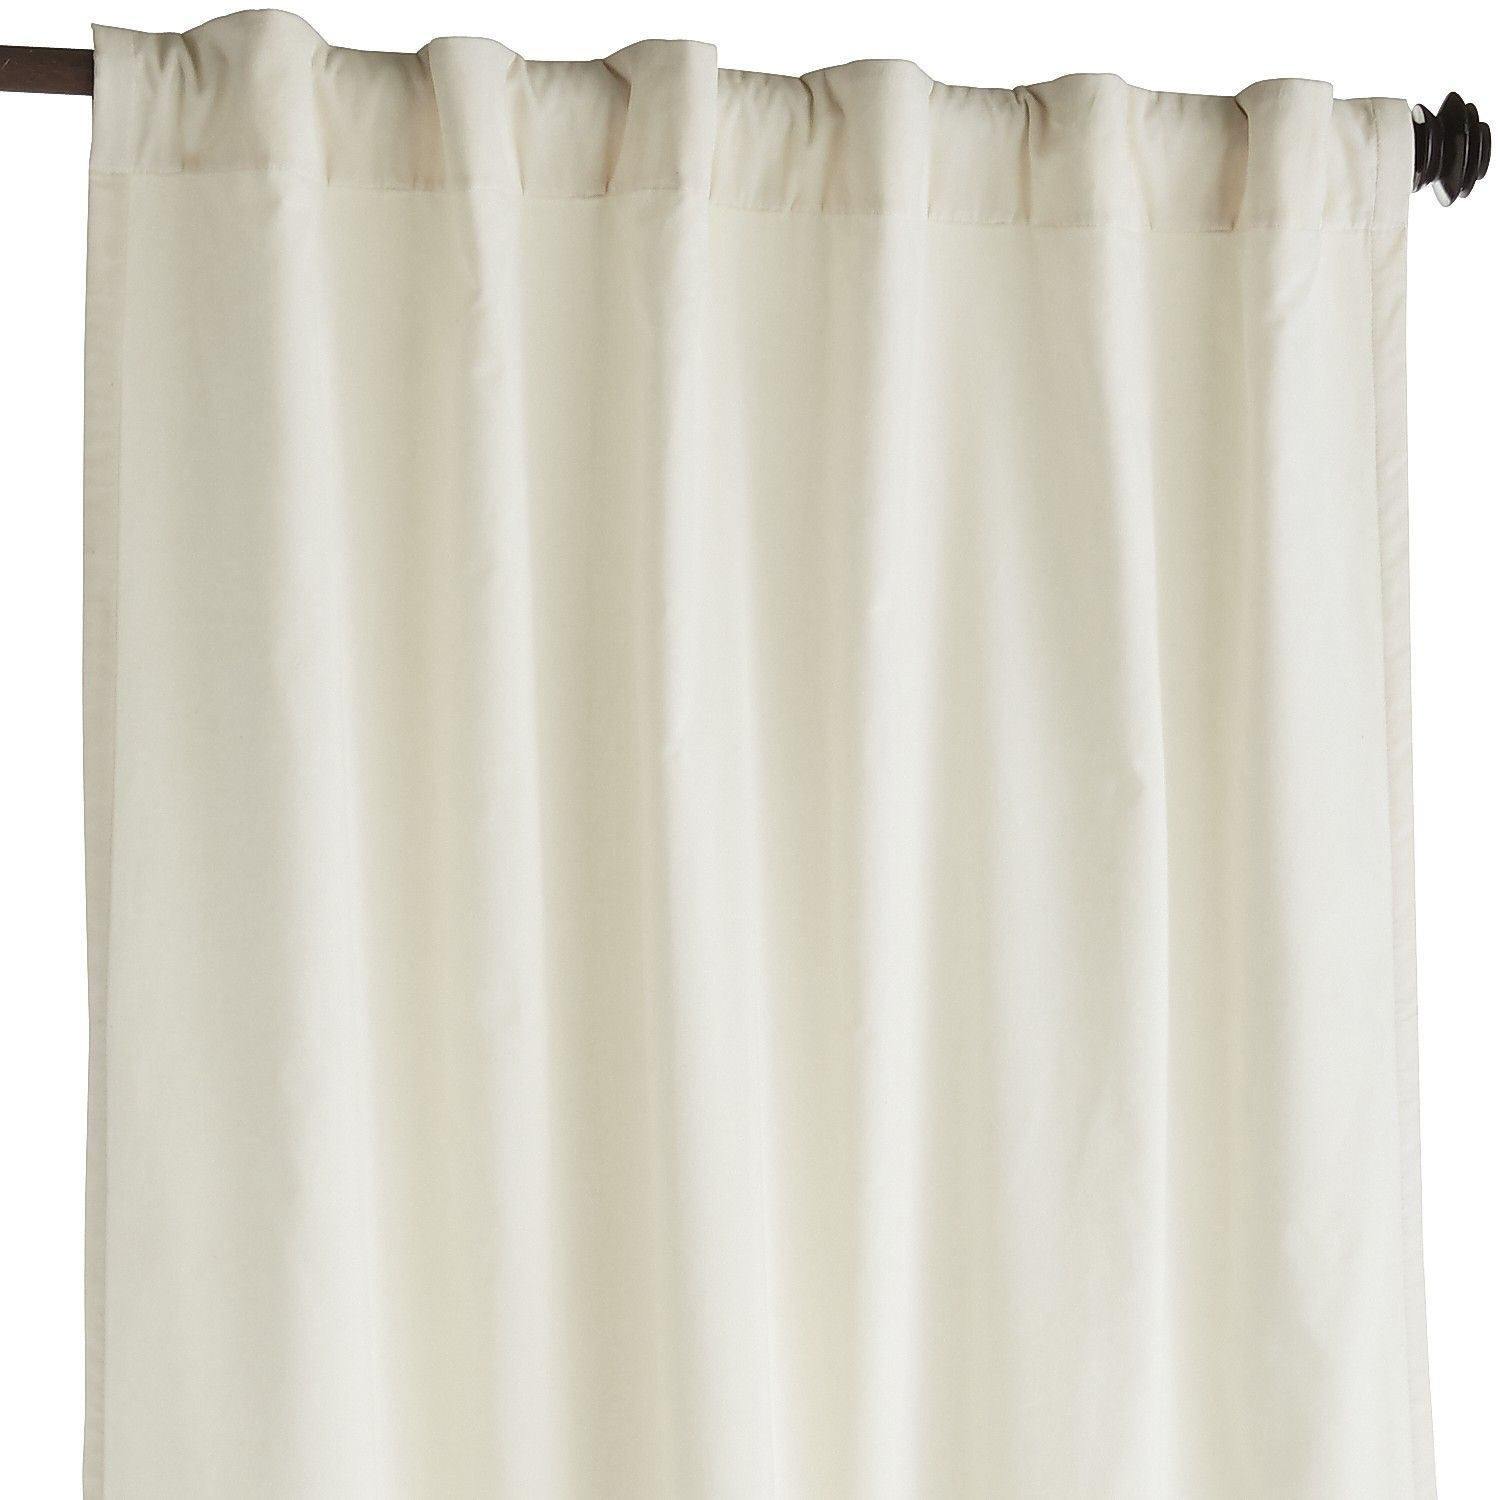 Sheridan Velvet White 120 Curtain White Curtains Velvet Curtains Diy Curtains